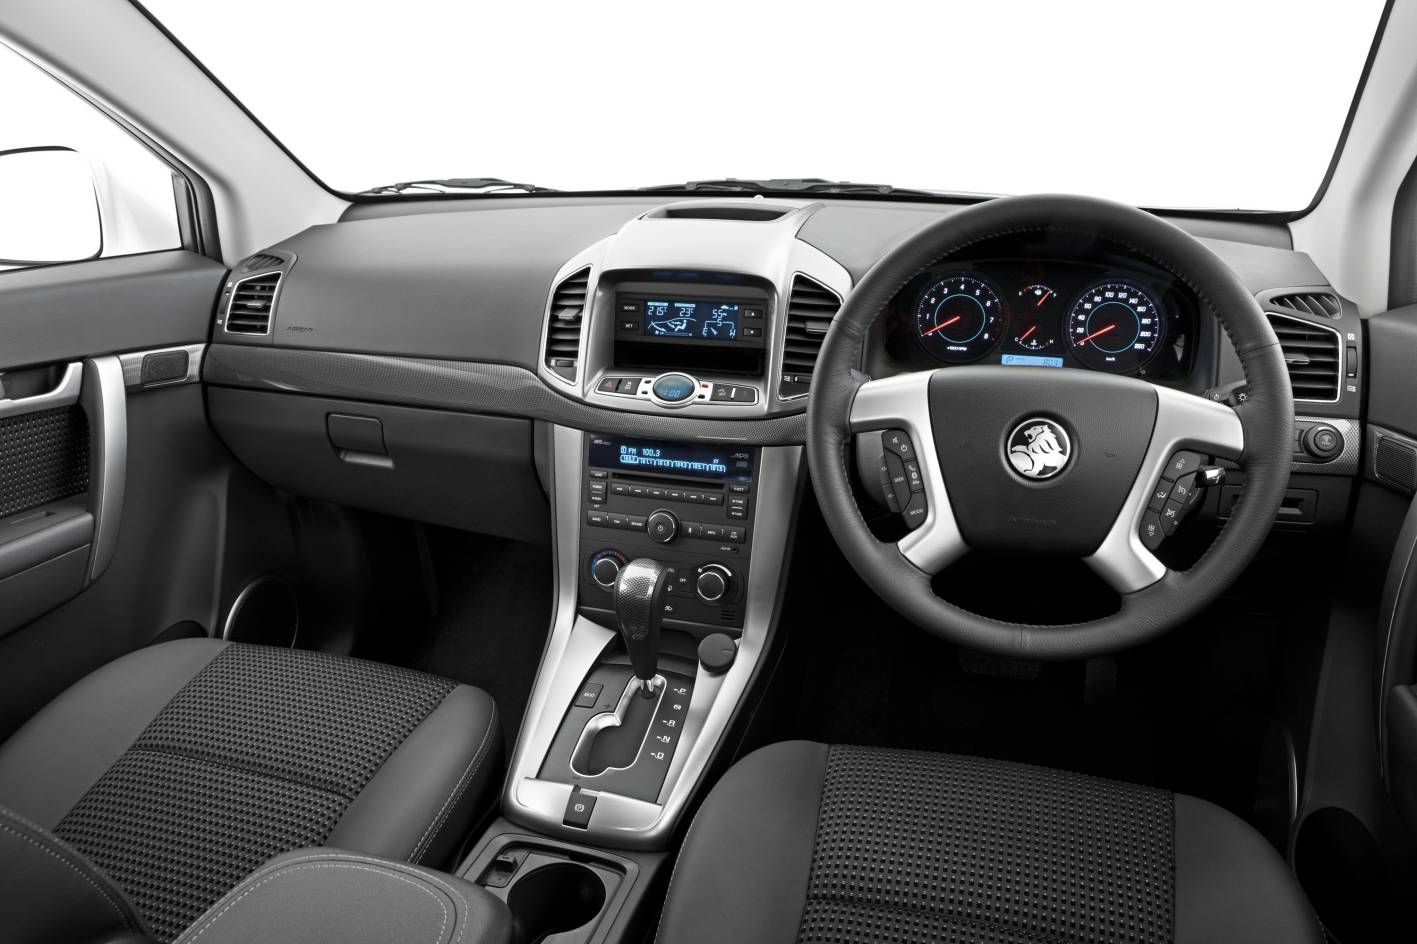 2008 Holden Captiva #7